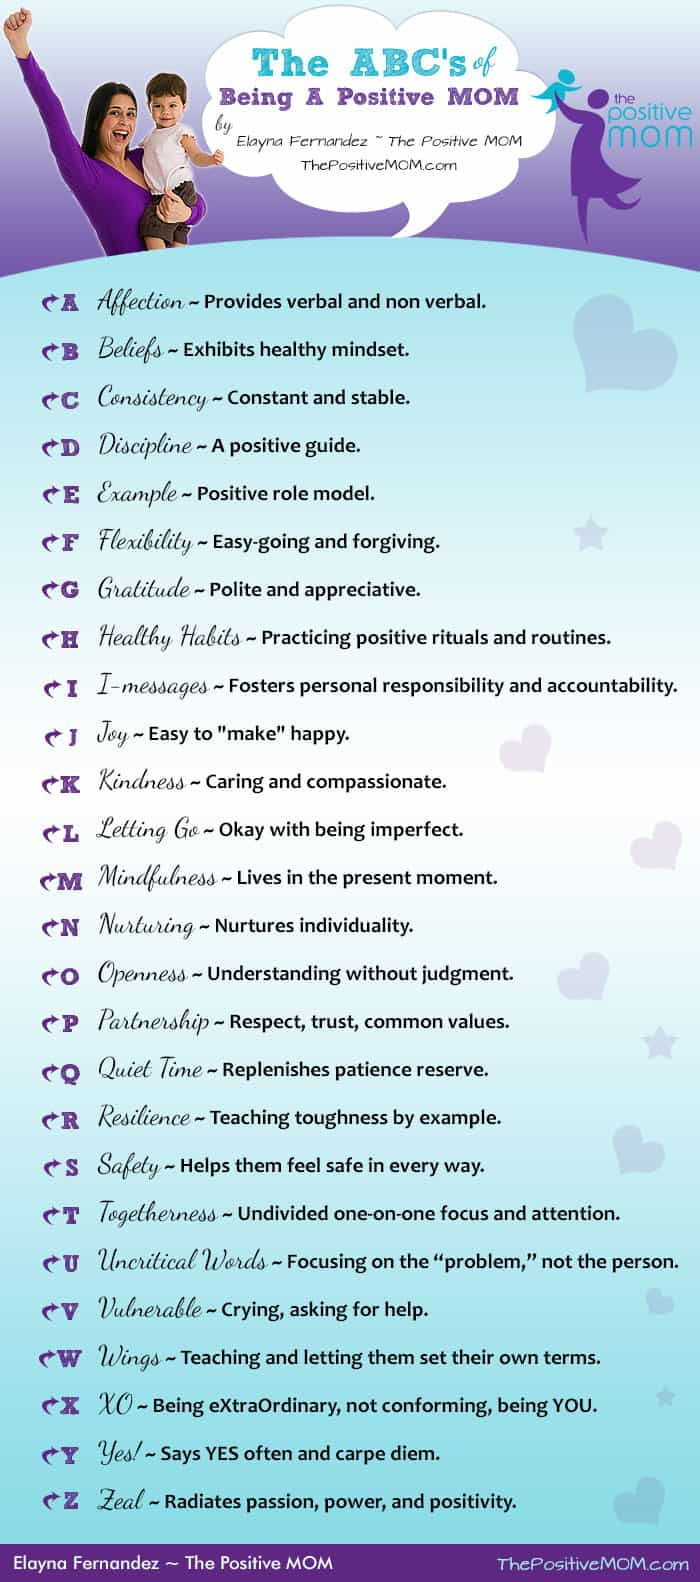 The ABCs of A Positive MOM - by Elayna Fernandez ~ The Positive MOM - with FREE PRINTABLE!